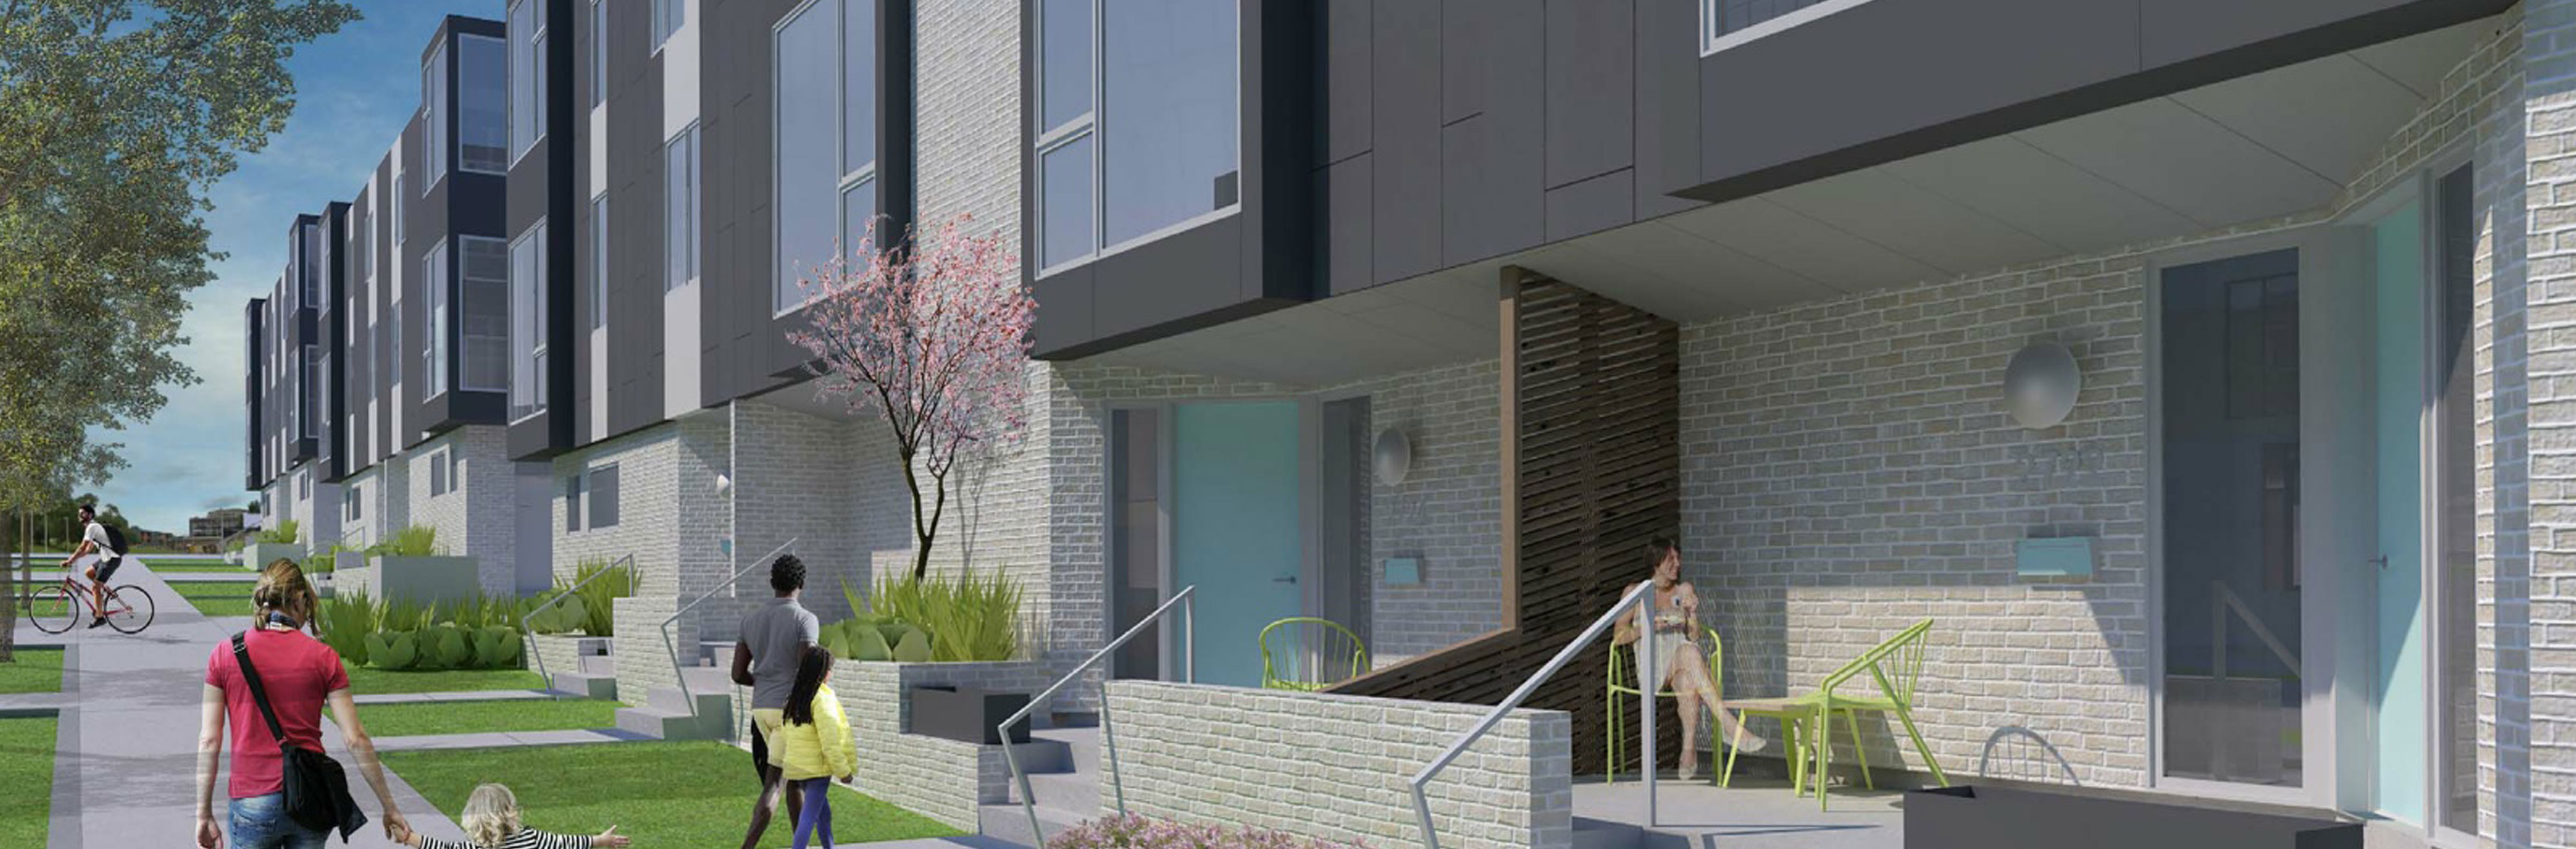 Gallerie Townhomes at 27th and McGee